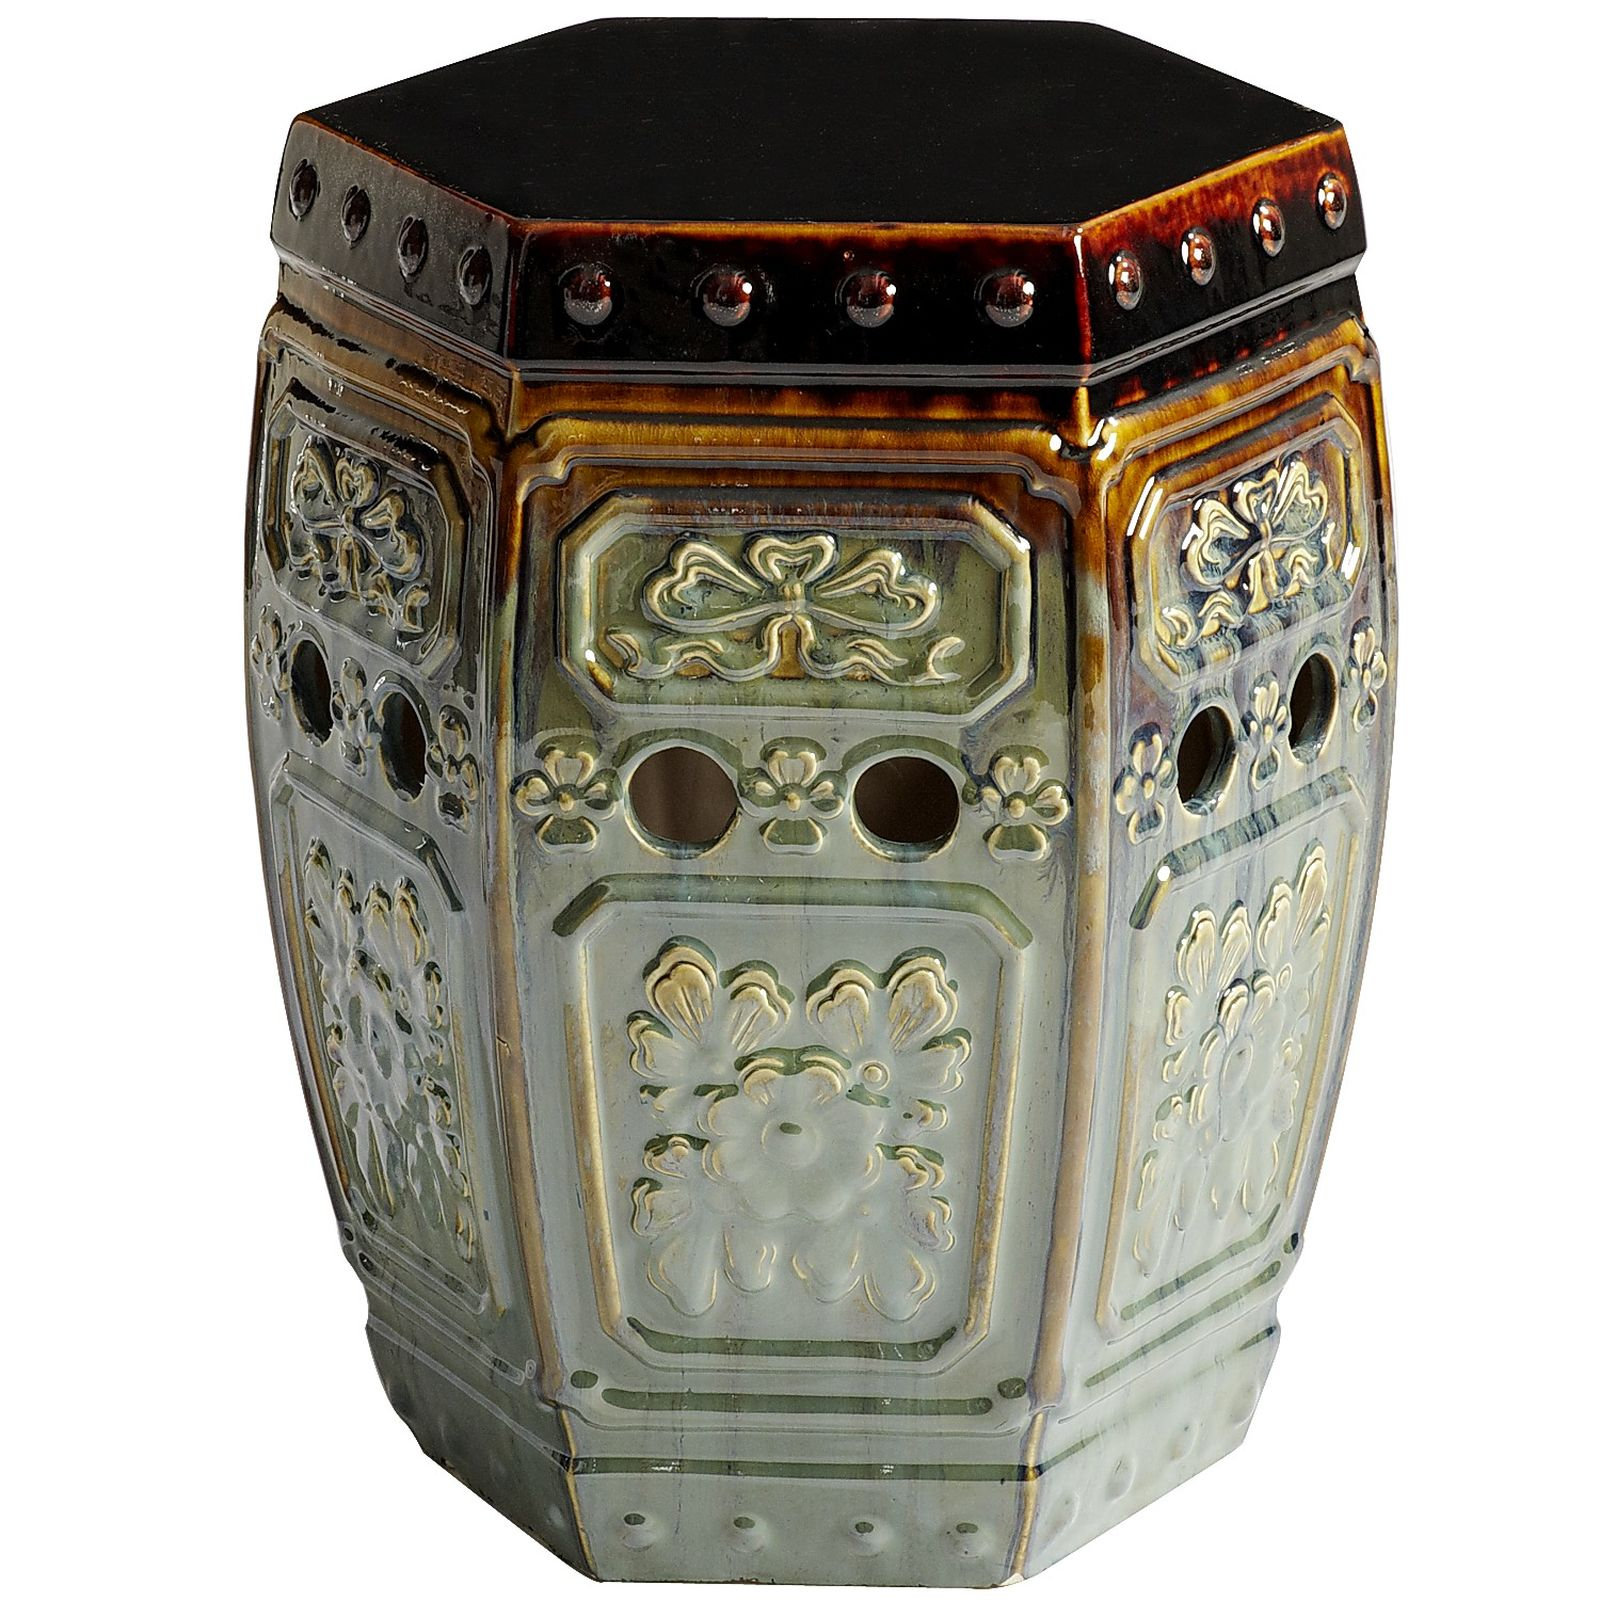 Fascinating garden stool for decorating interior ideas with ceramic garden stool